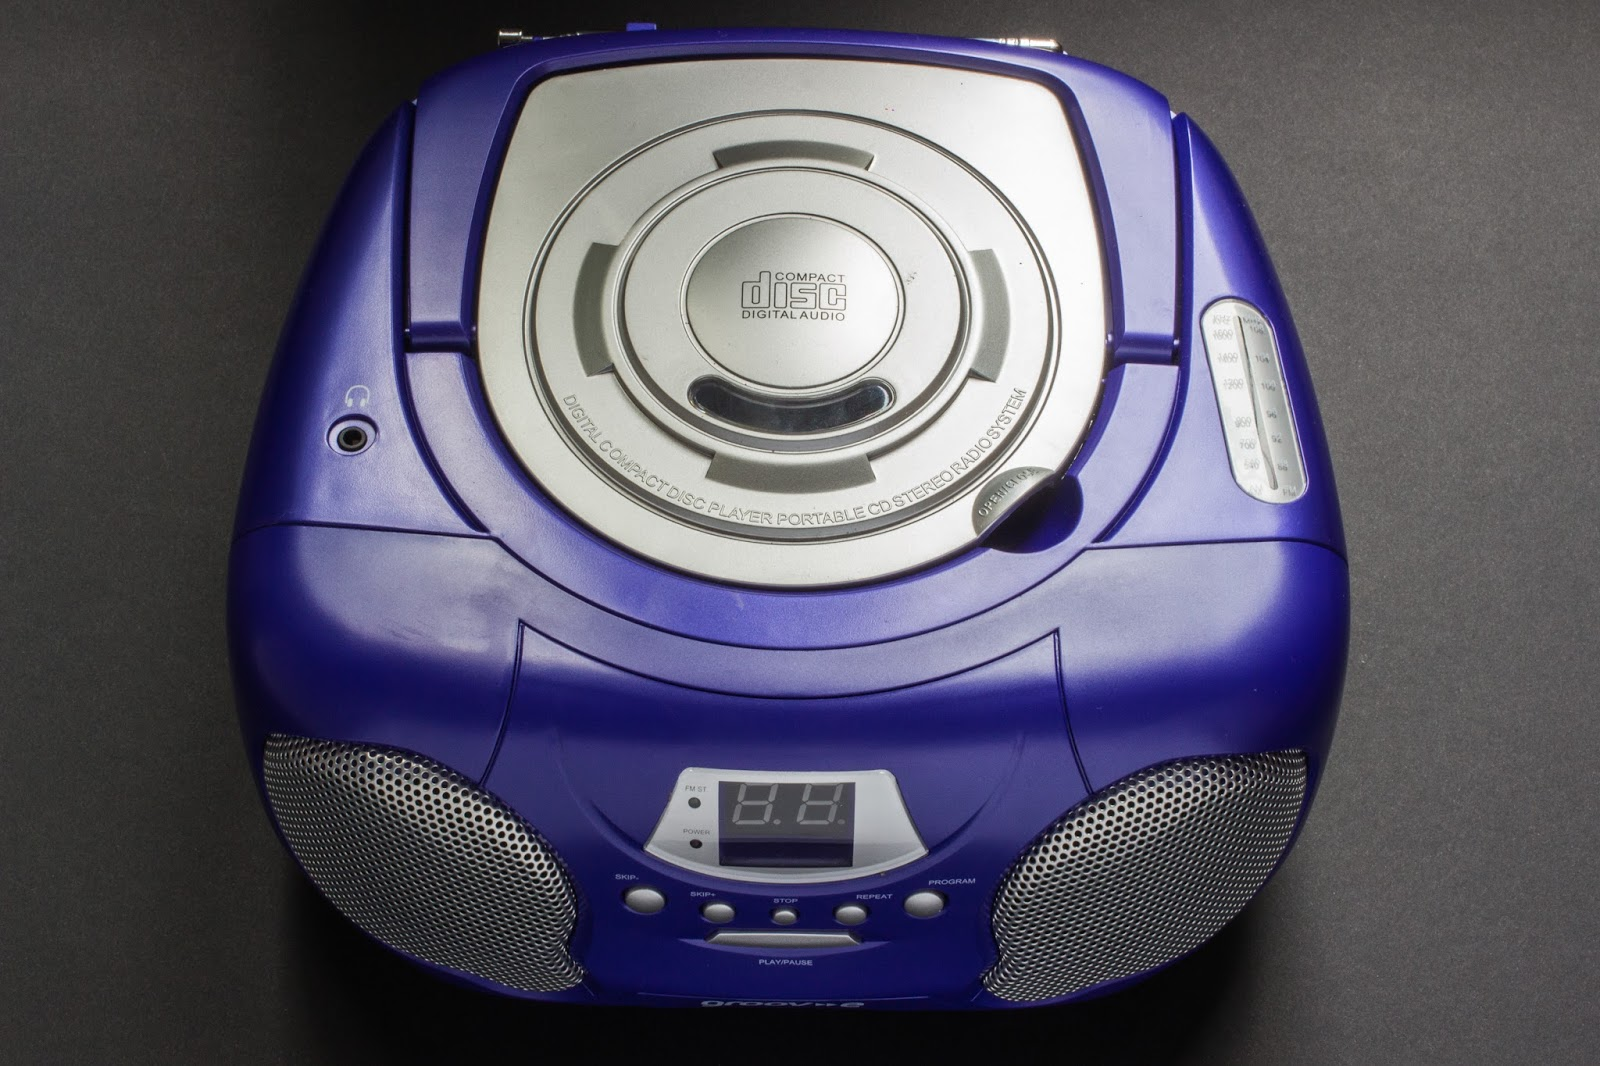 Purple stereo with 2 speakers and a cd player opening on top